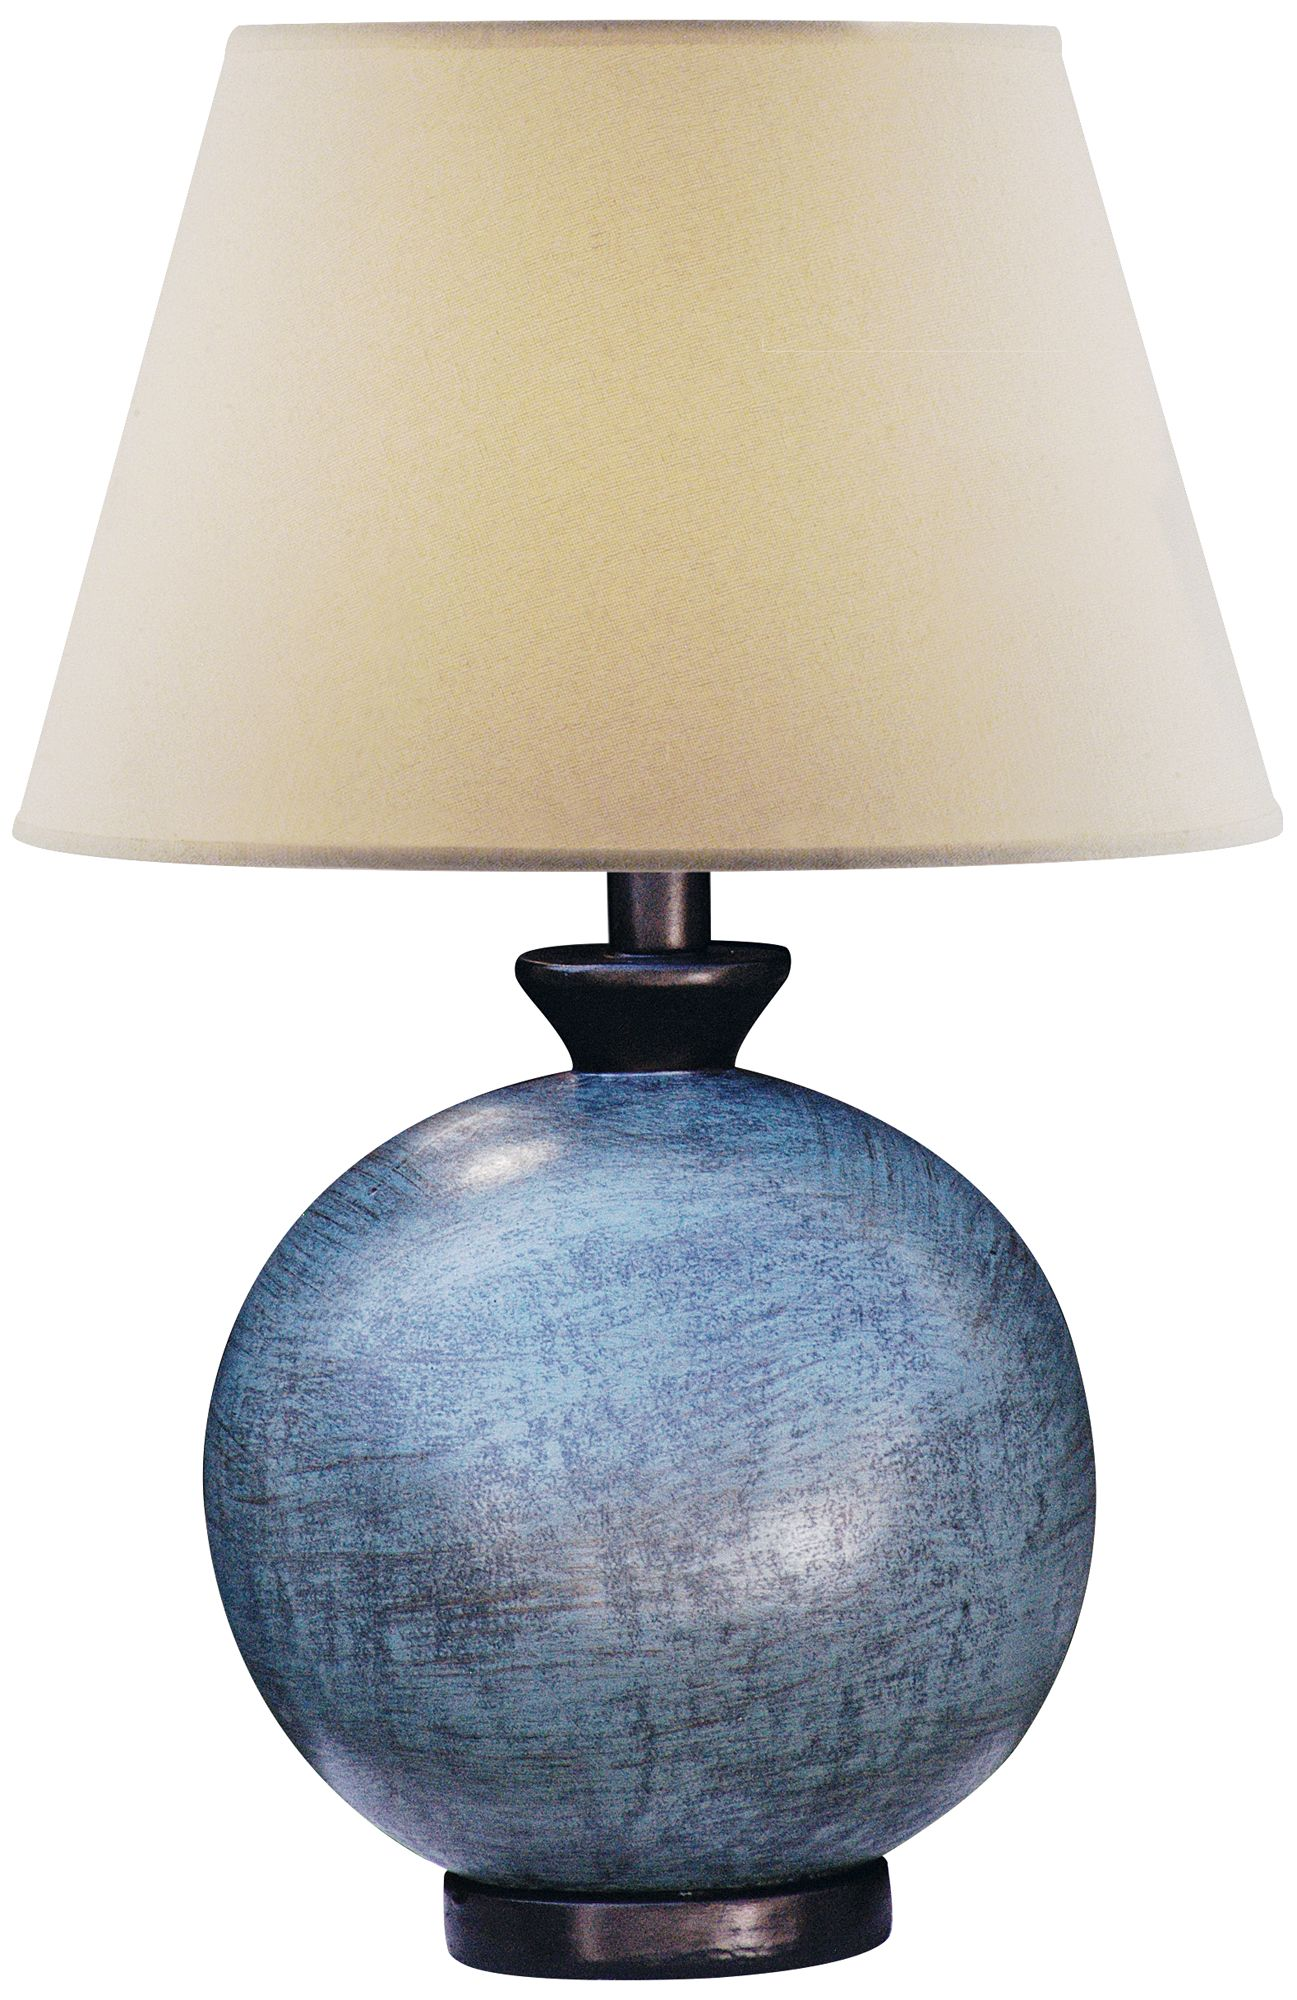 Perfect Pitkin Blue Round Table Lamp